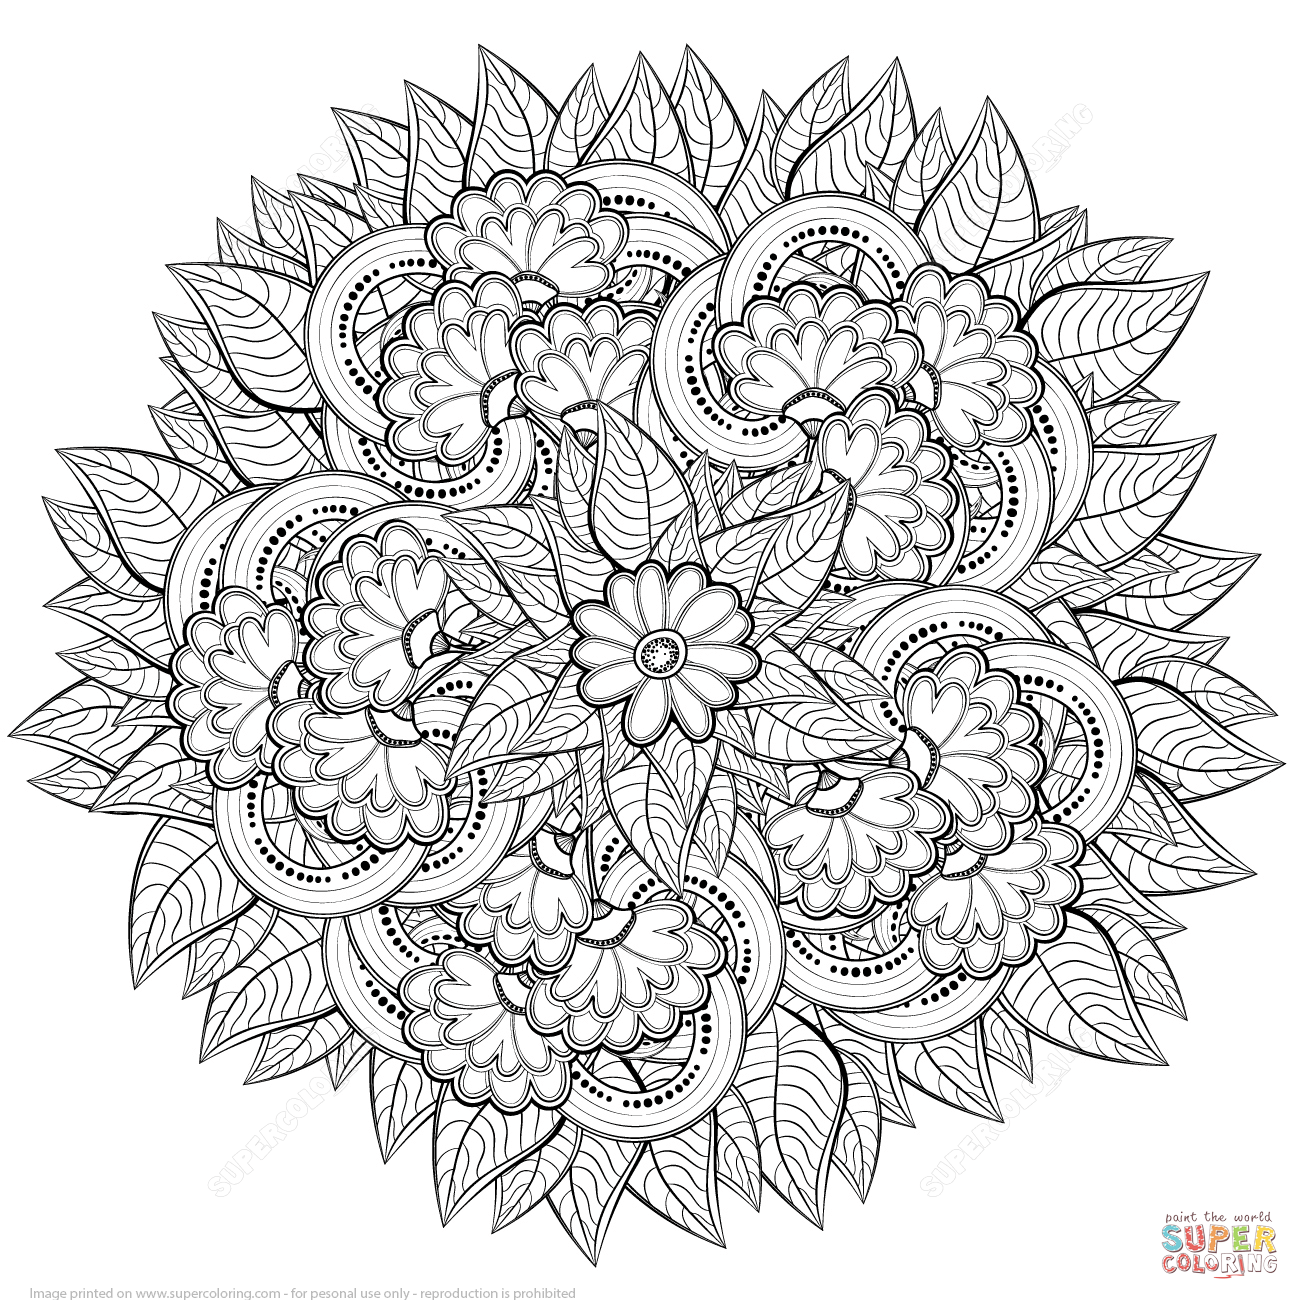 zentangle coloring pages free printable zentangle colouring pages in the playroom free pages zentangle coloring printable